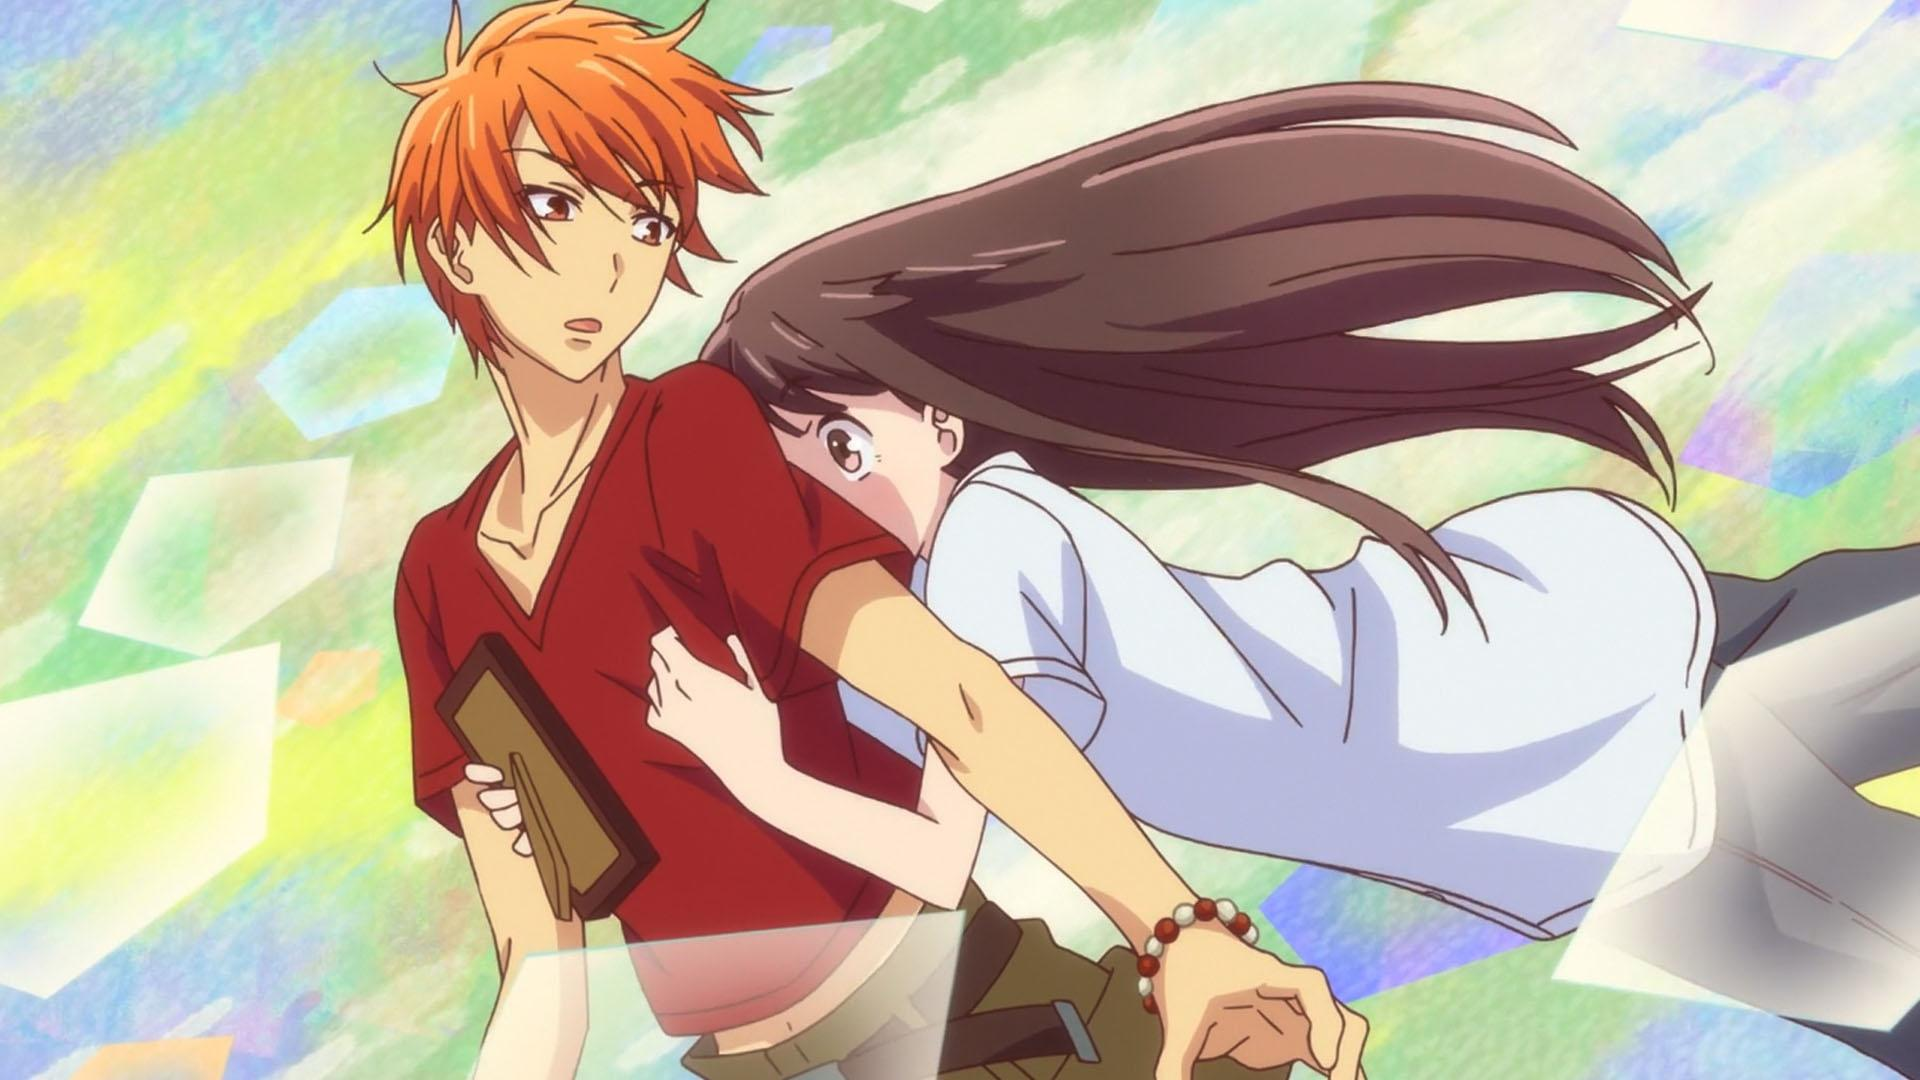 Fruits Basket Anime Returns with a New Nostalgia [Review]